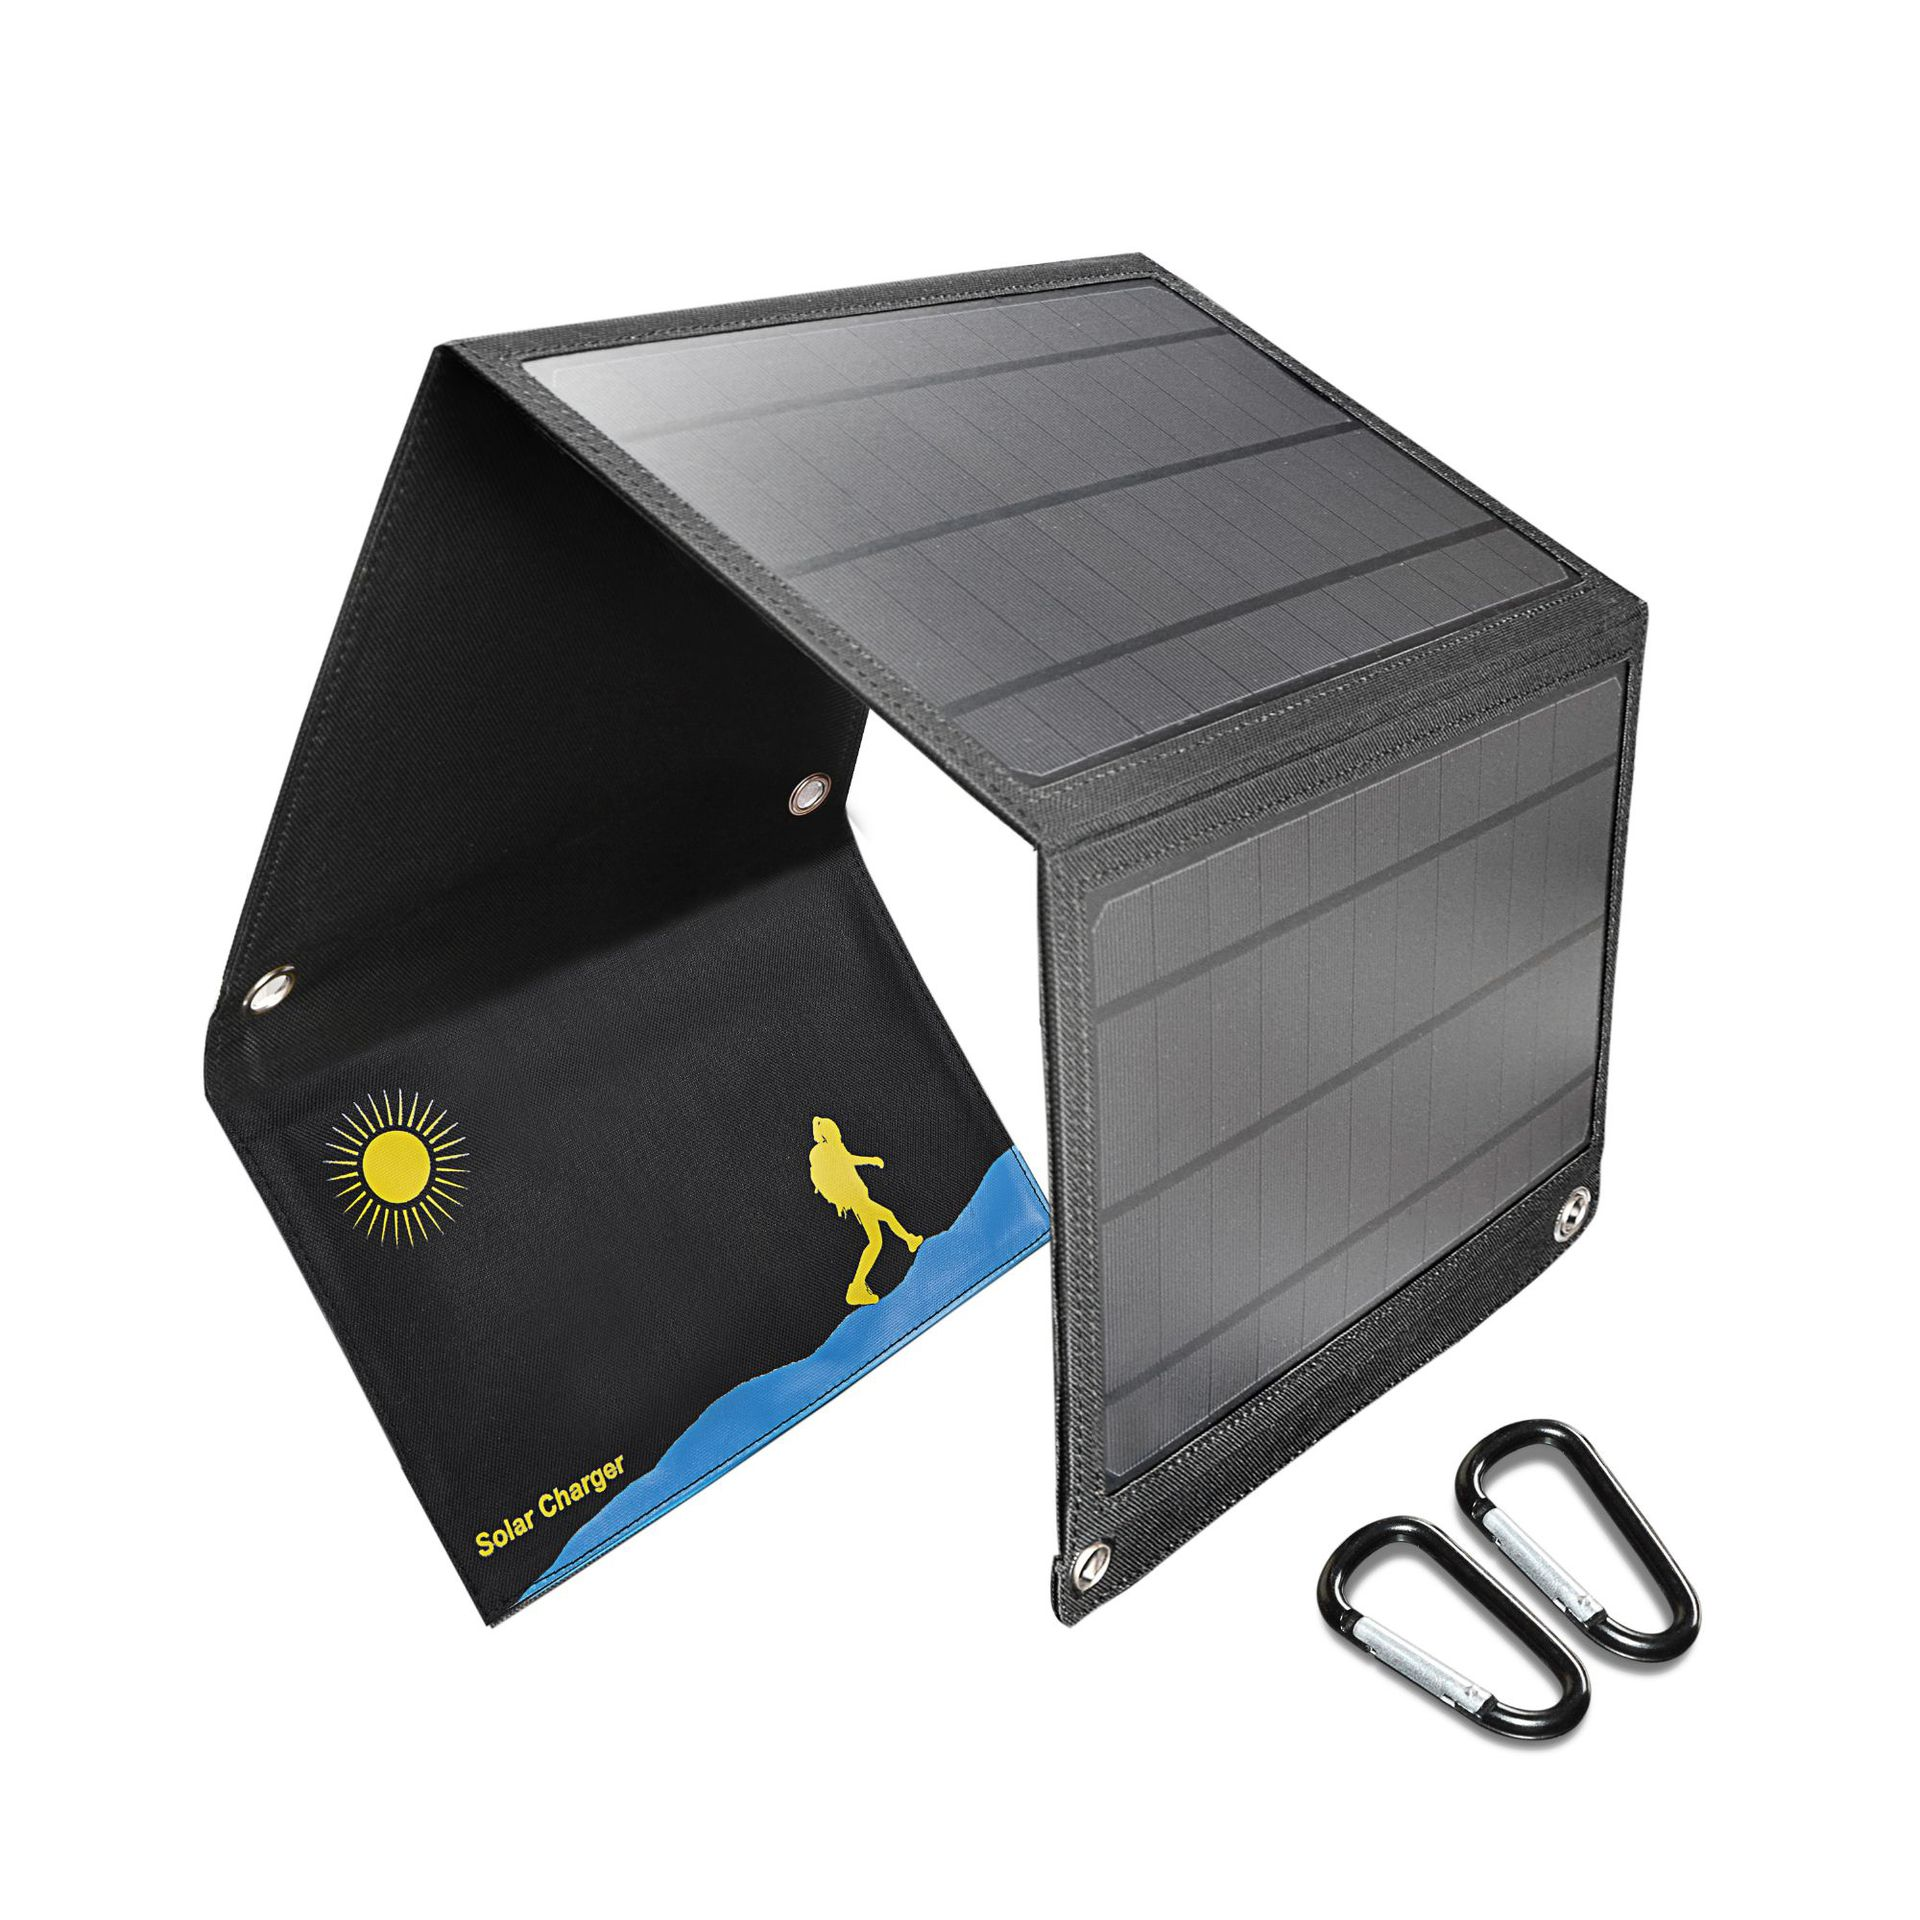 Portable 21W Folding Foldable Waterproof Solar Panel Charger Mobile Power Bank for Phone Battery Dual USB Port Outdoor Solar box